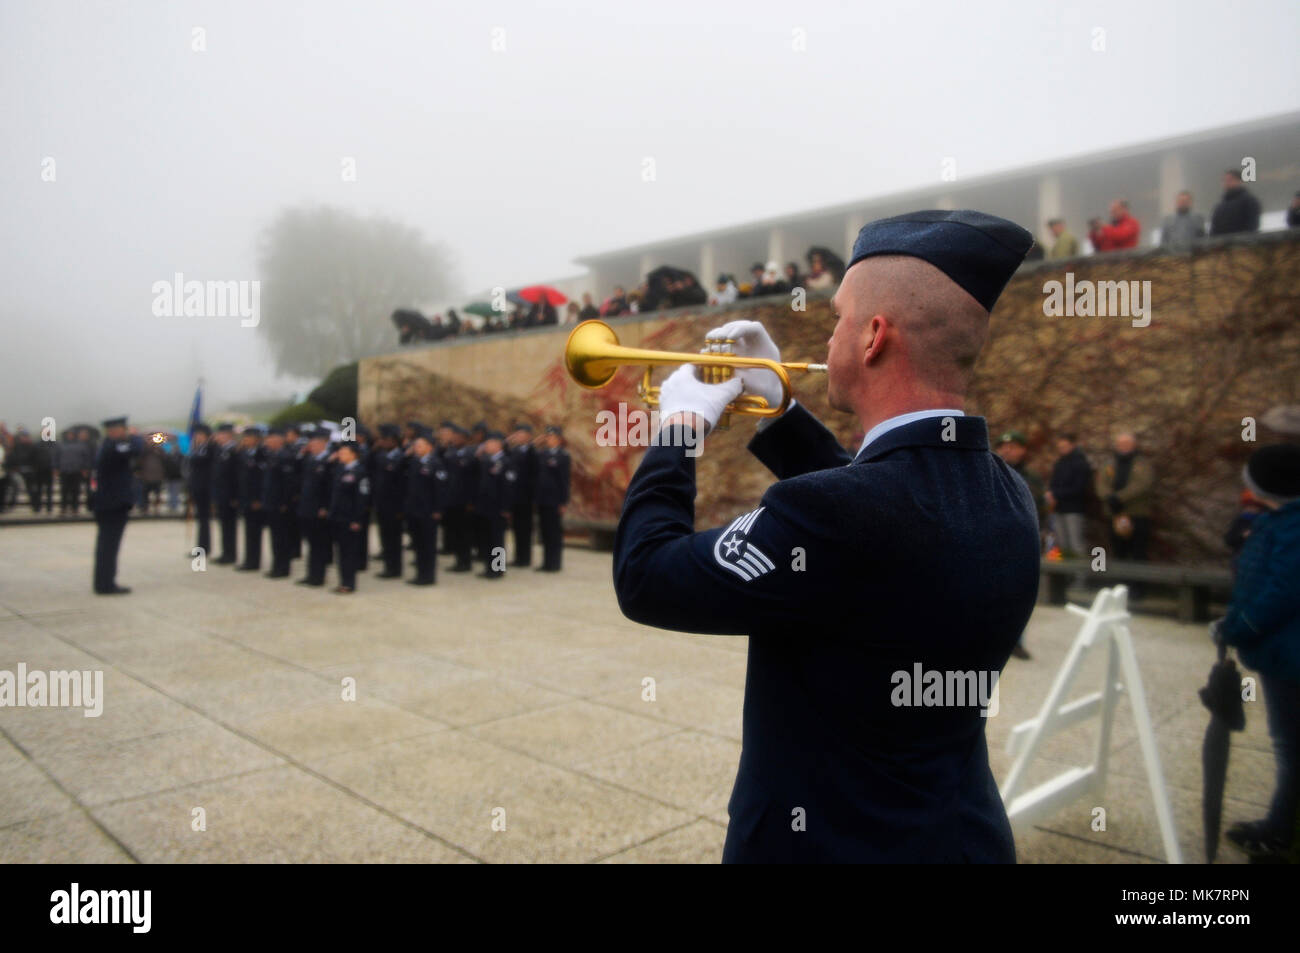 U.S. Air Force Staff Sgt. Ryan Wist, 786th Civil Engineer Squadron water and fuel systems maintenance technician, plays the bugle during a Veterans Day ceremony at Henri-Chapelle American Cemetery and Memorial, Belgium, Nov. 11, 2017. Despite inclement weather, more than 100 veterans and civilians turned up for the ceremony. (U.S. Air Force photo by Airman 1st Class Joshua Magbanua) - Stock Image